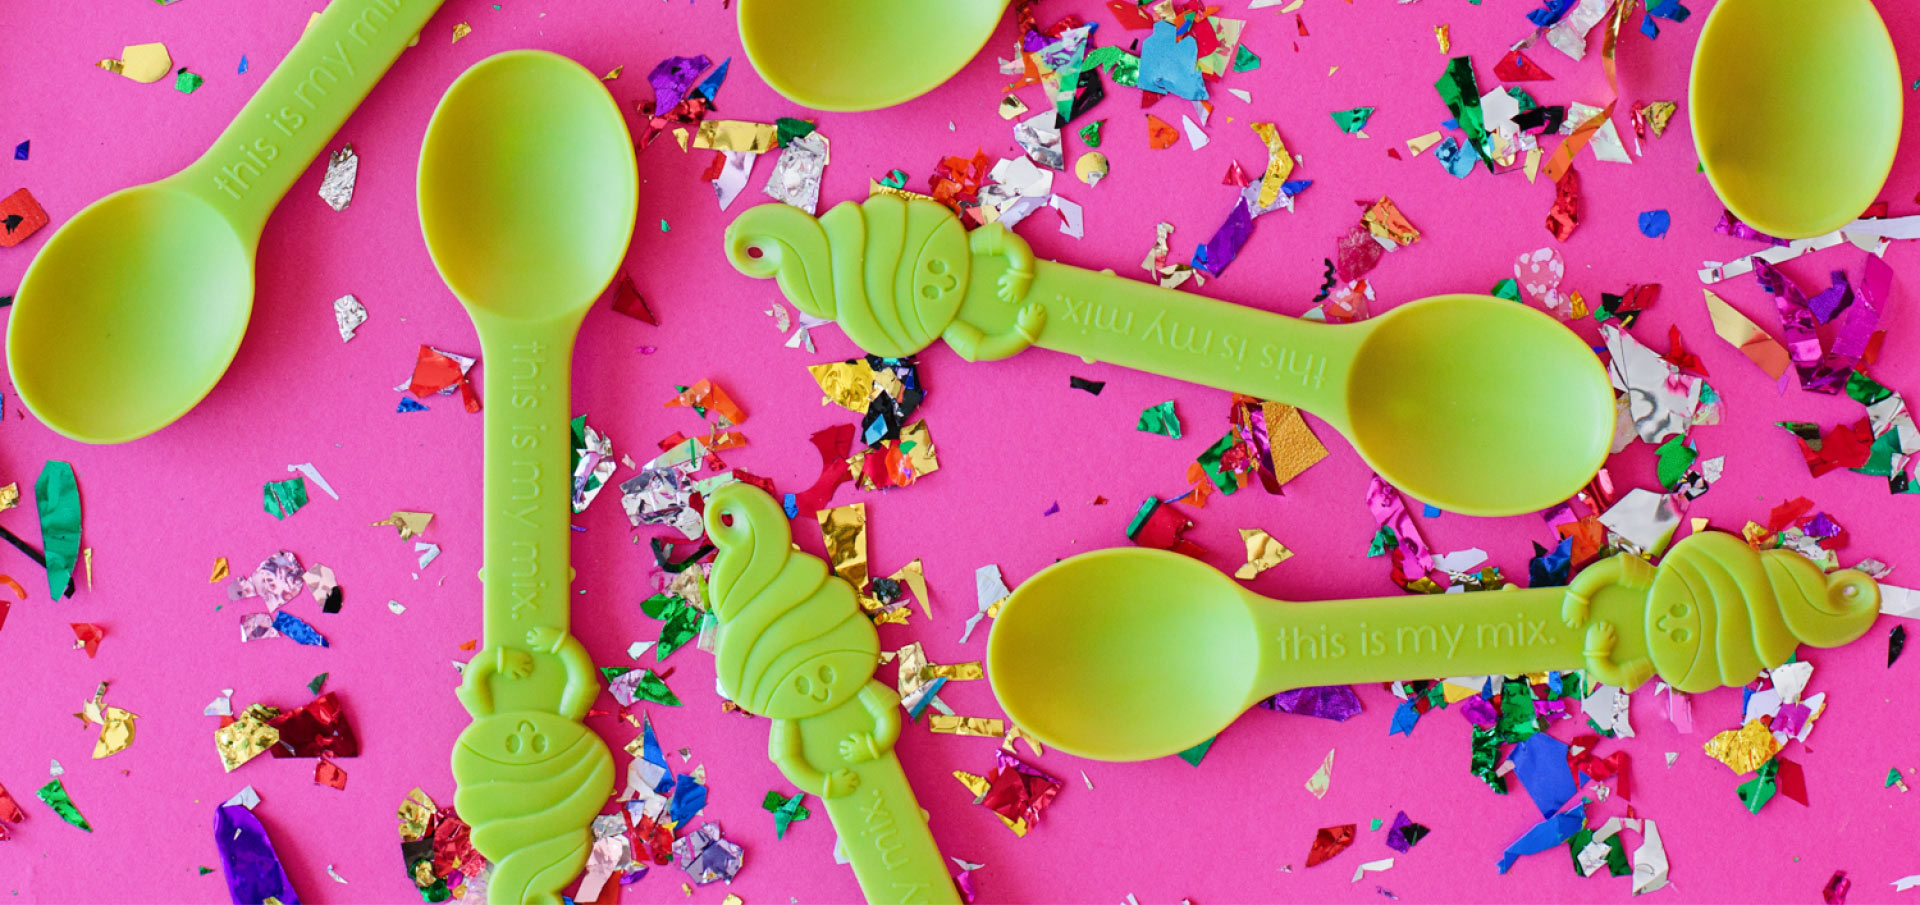 A variety of Menchie's spoons